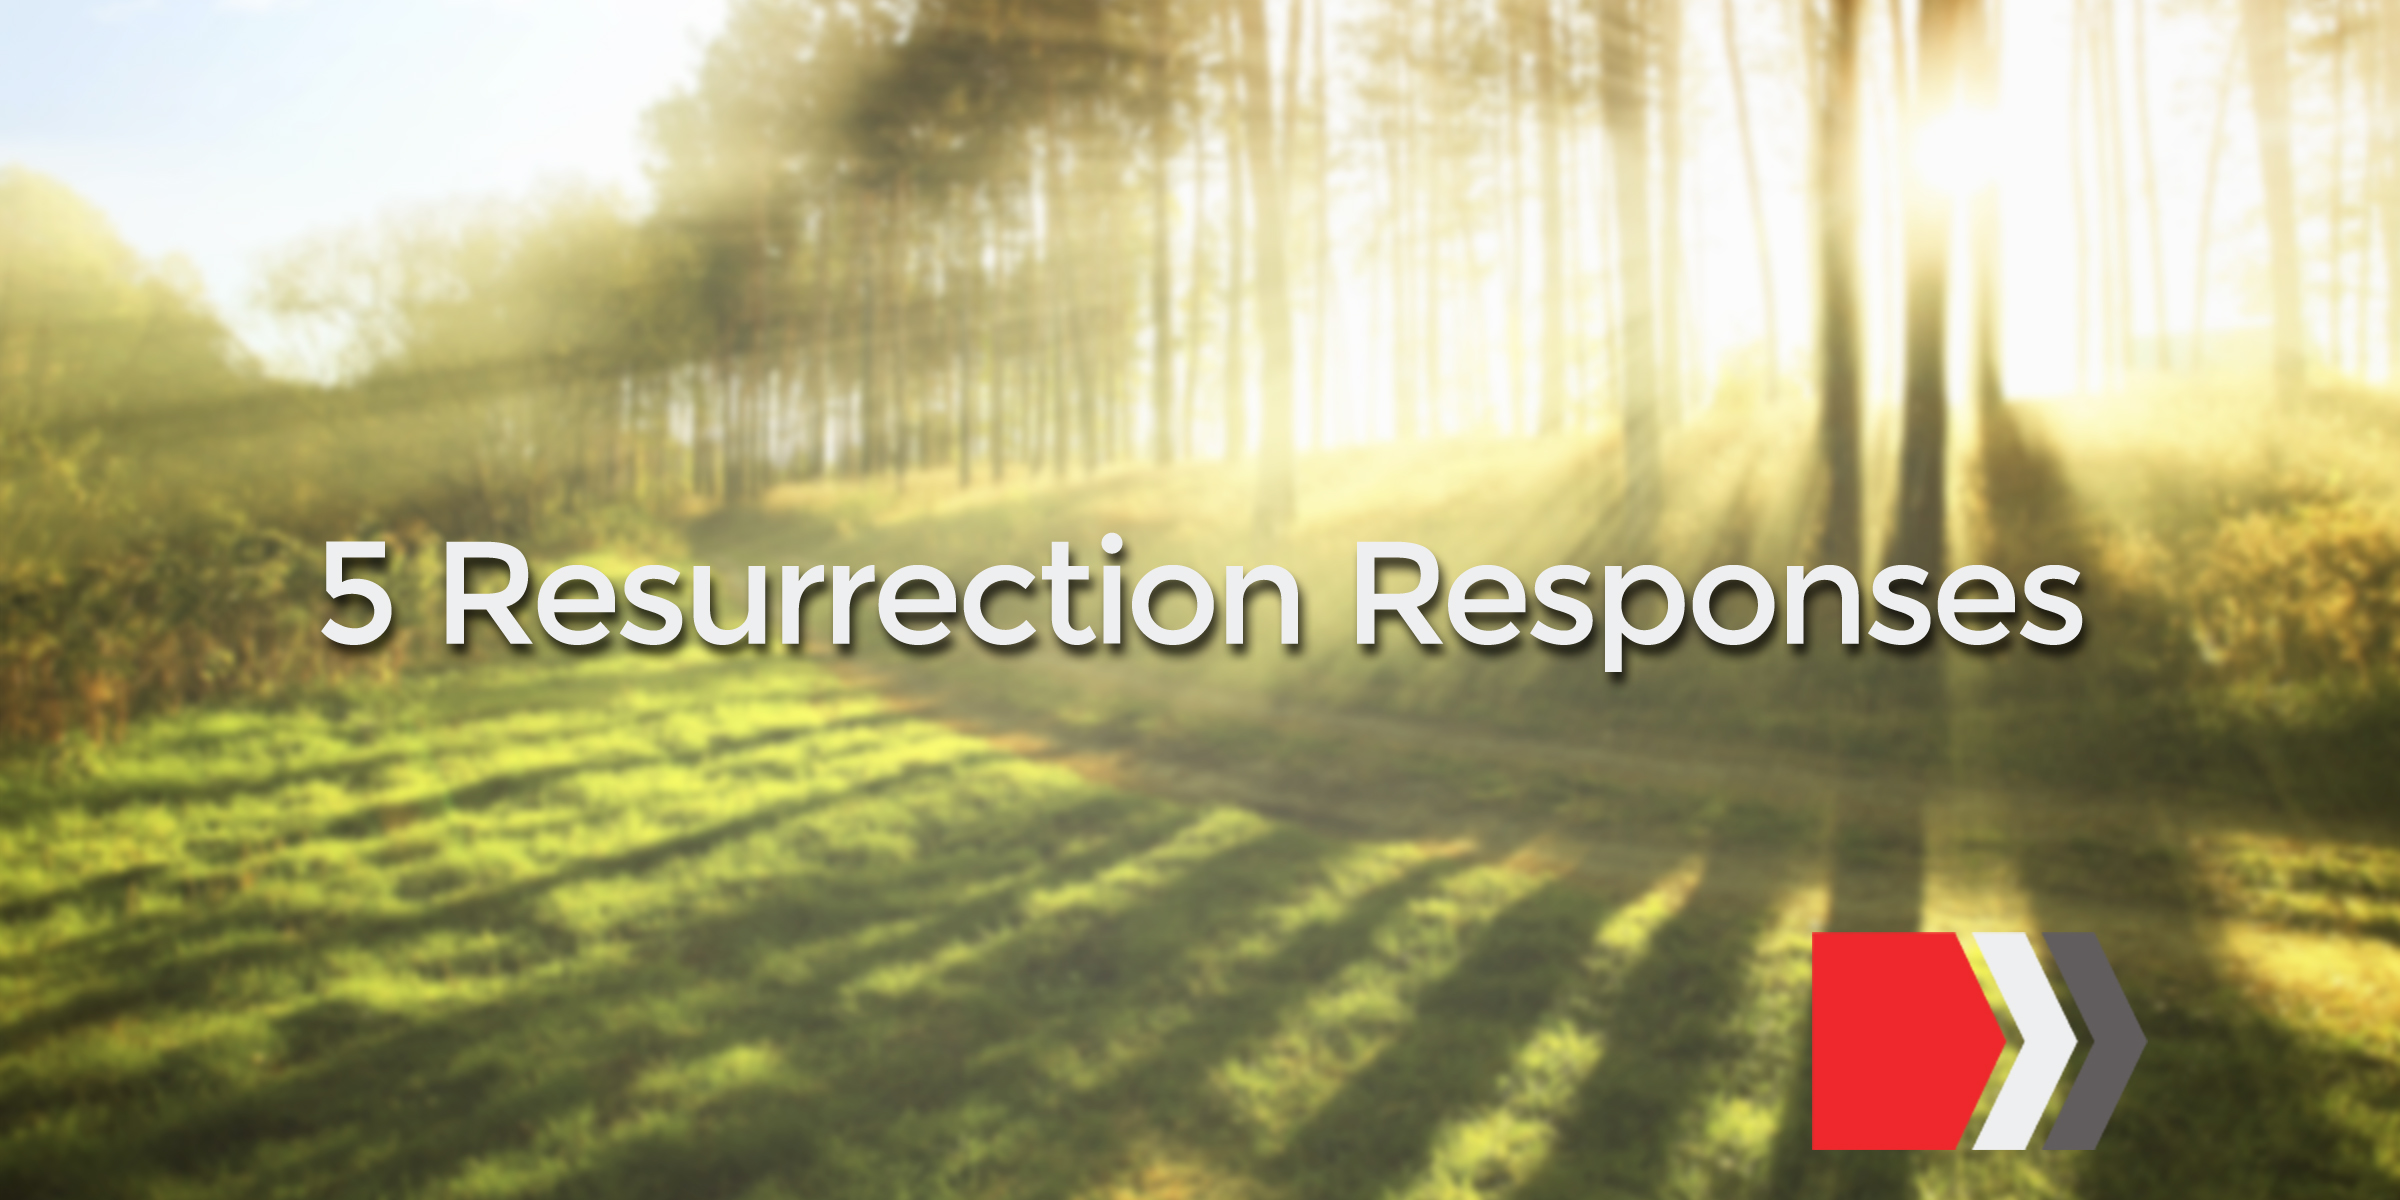 5 Resurrection Responses